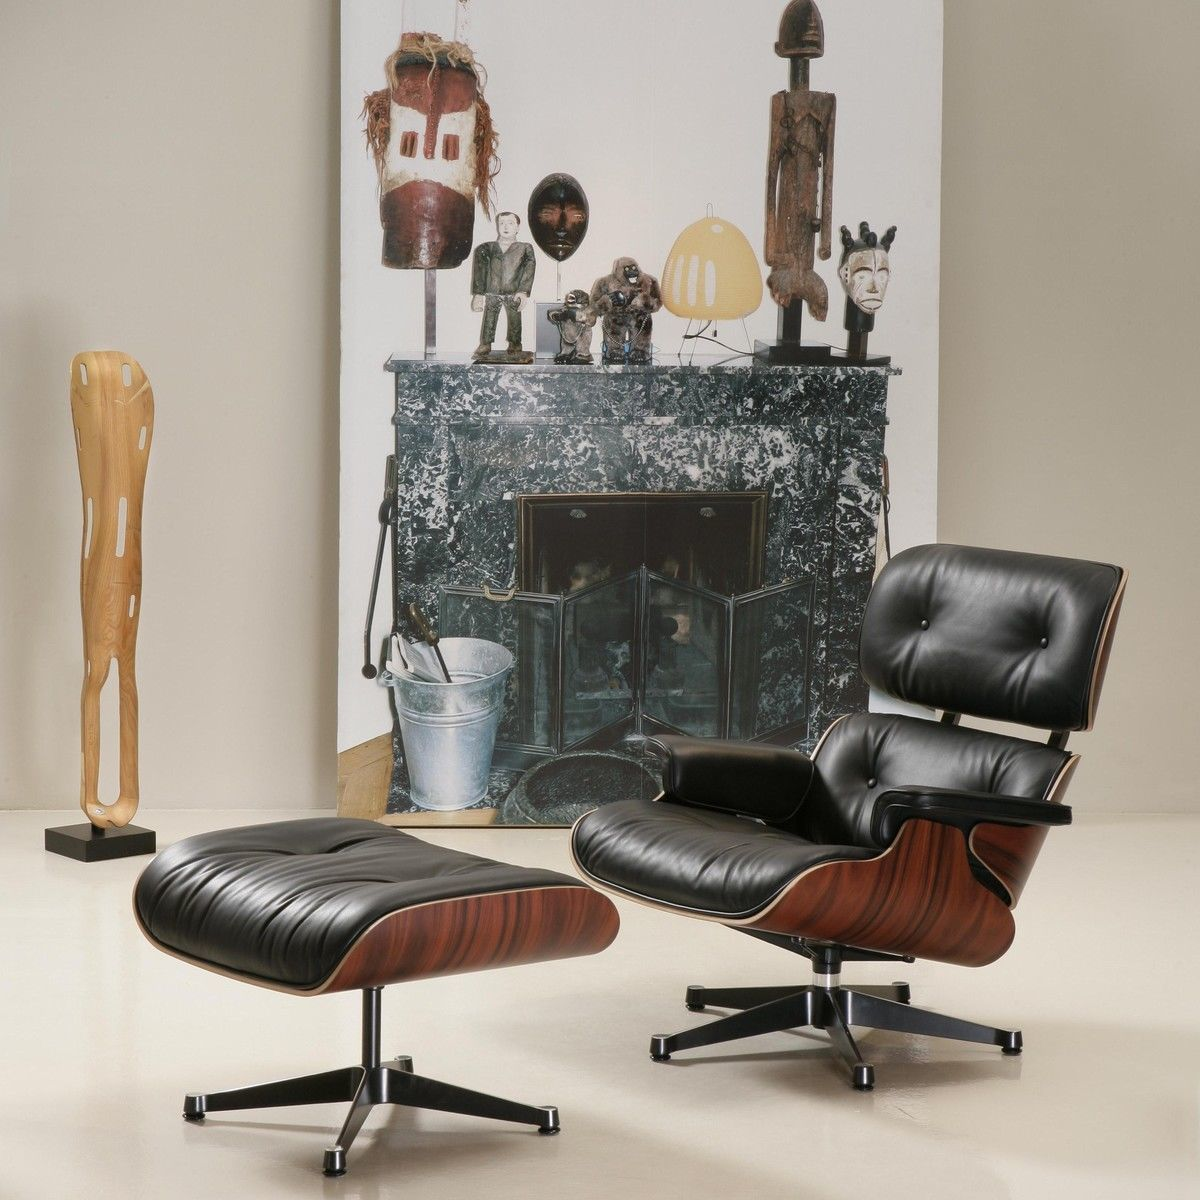 Eames Stuhl Gepolstert Eames Lounge Chair Ottoman | Vitra | Ambientedirect.com